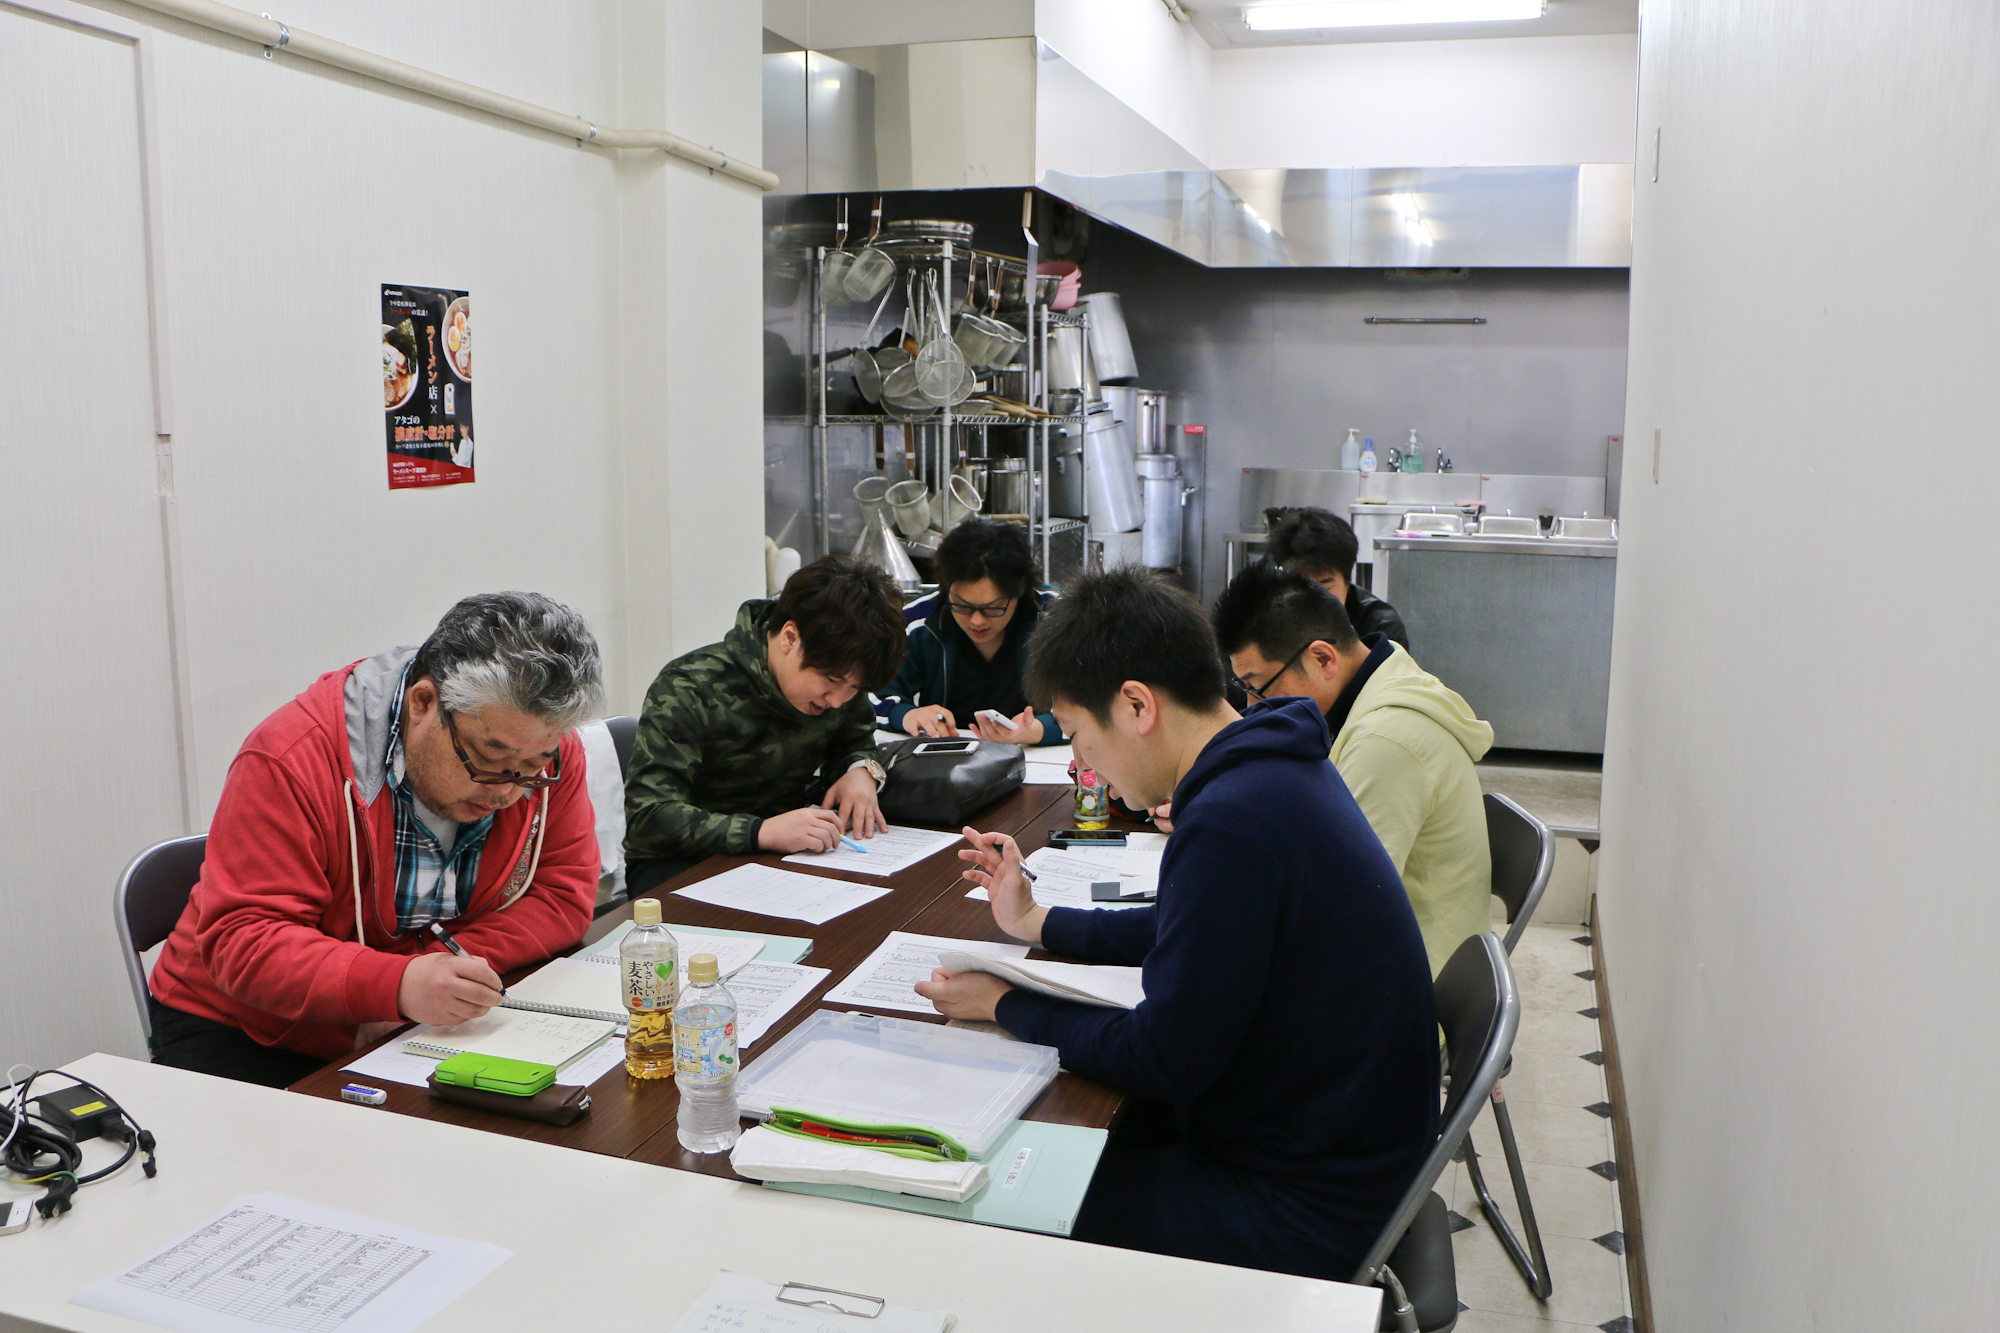 Ramen school students planning their ramen recipes.